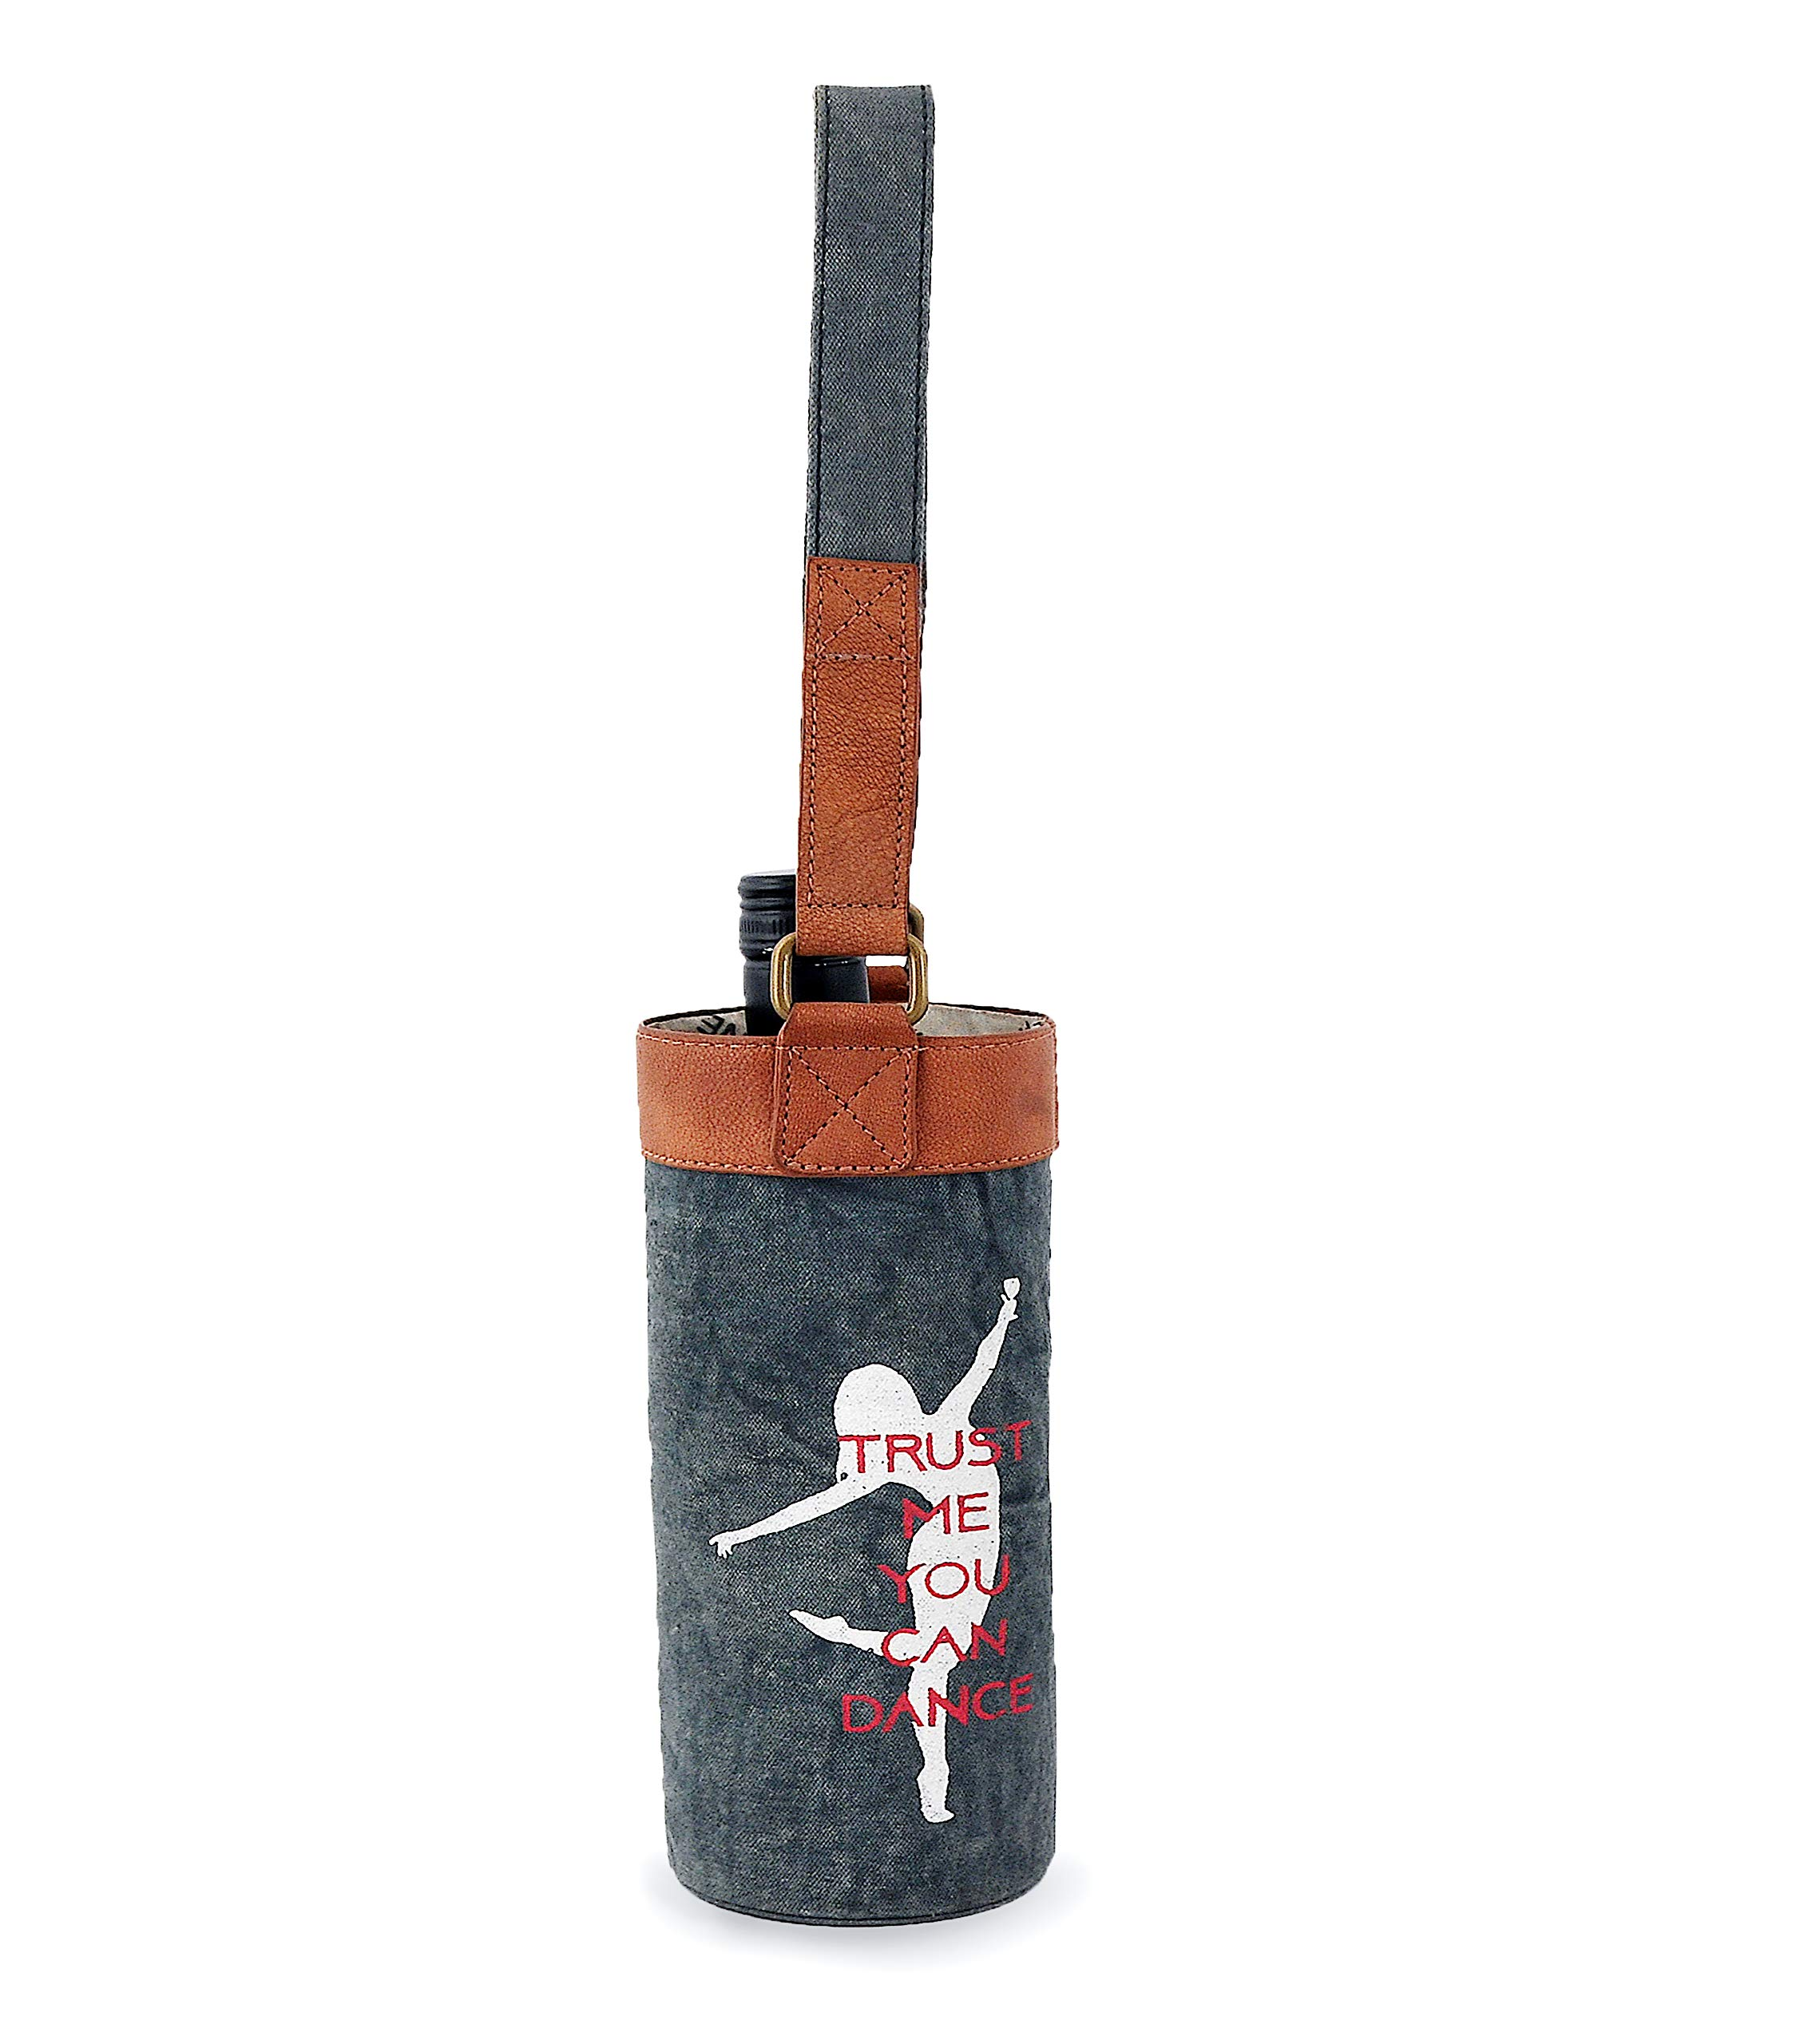 Wine Bag Carrier Holder Cover, Perfect for parties, Made of Canvas and Leather, Eco friendly bag, Handcrafted by Daphne (Dance)